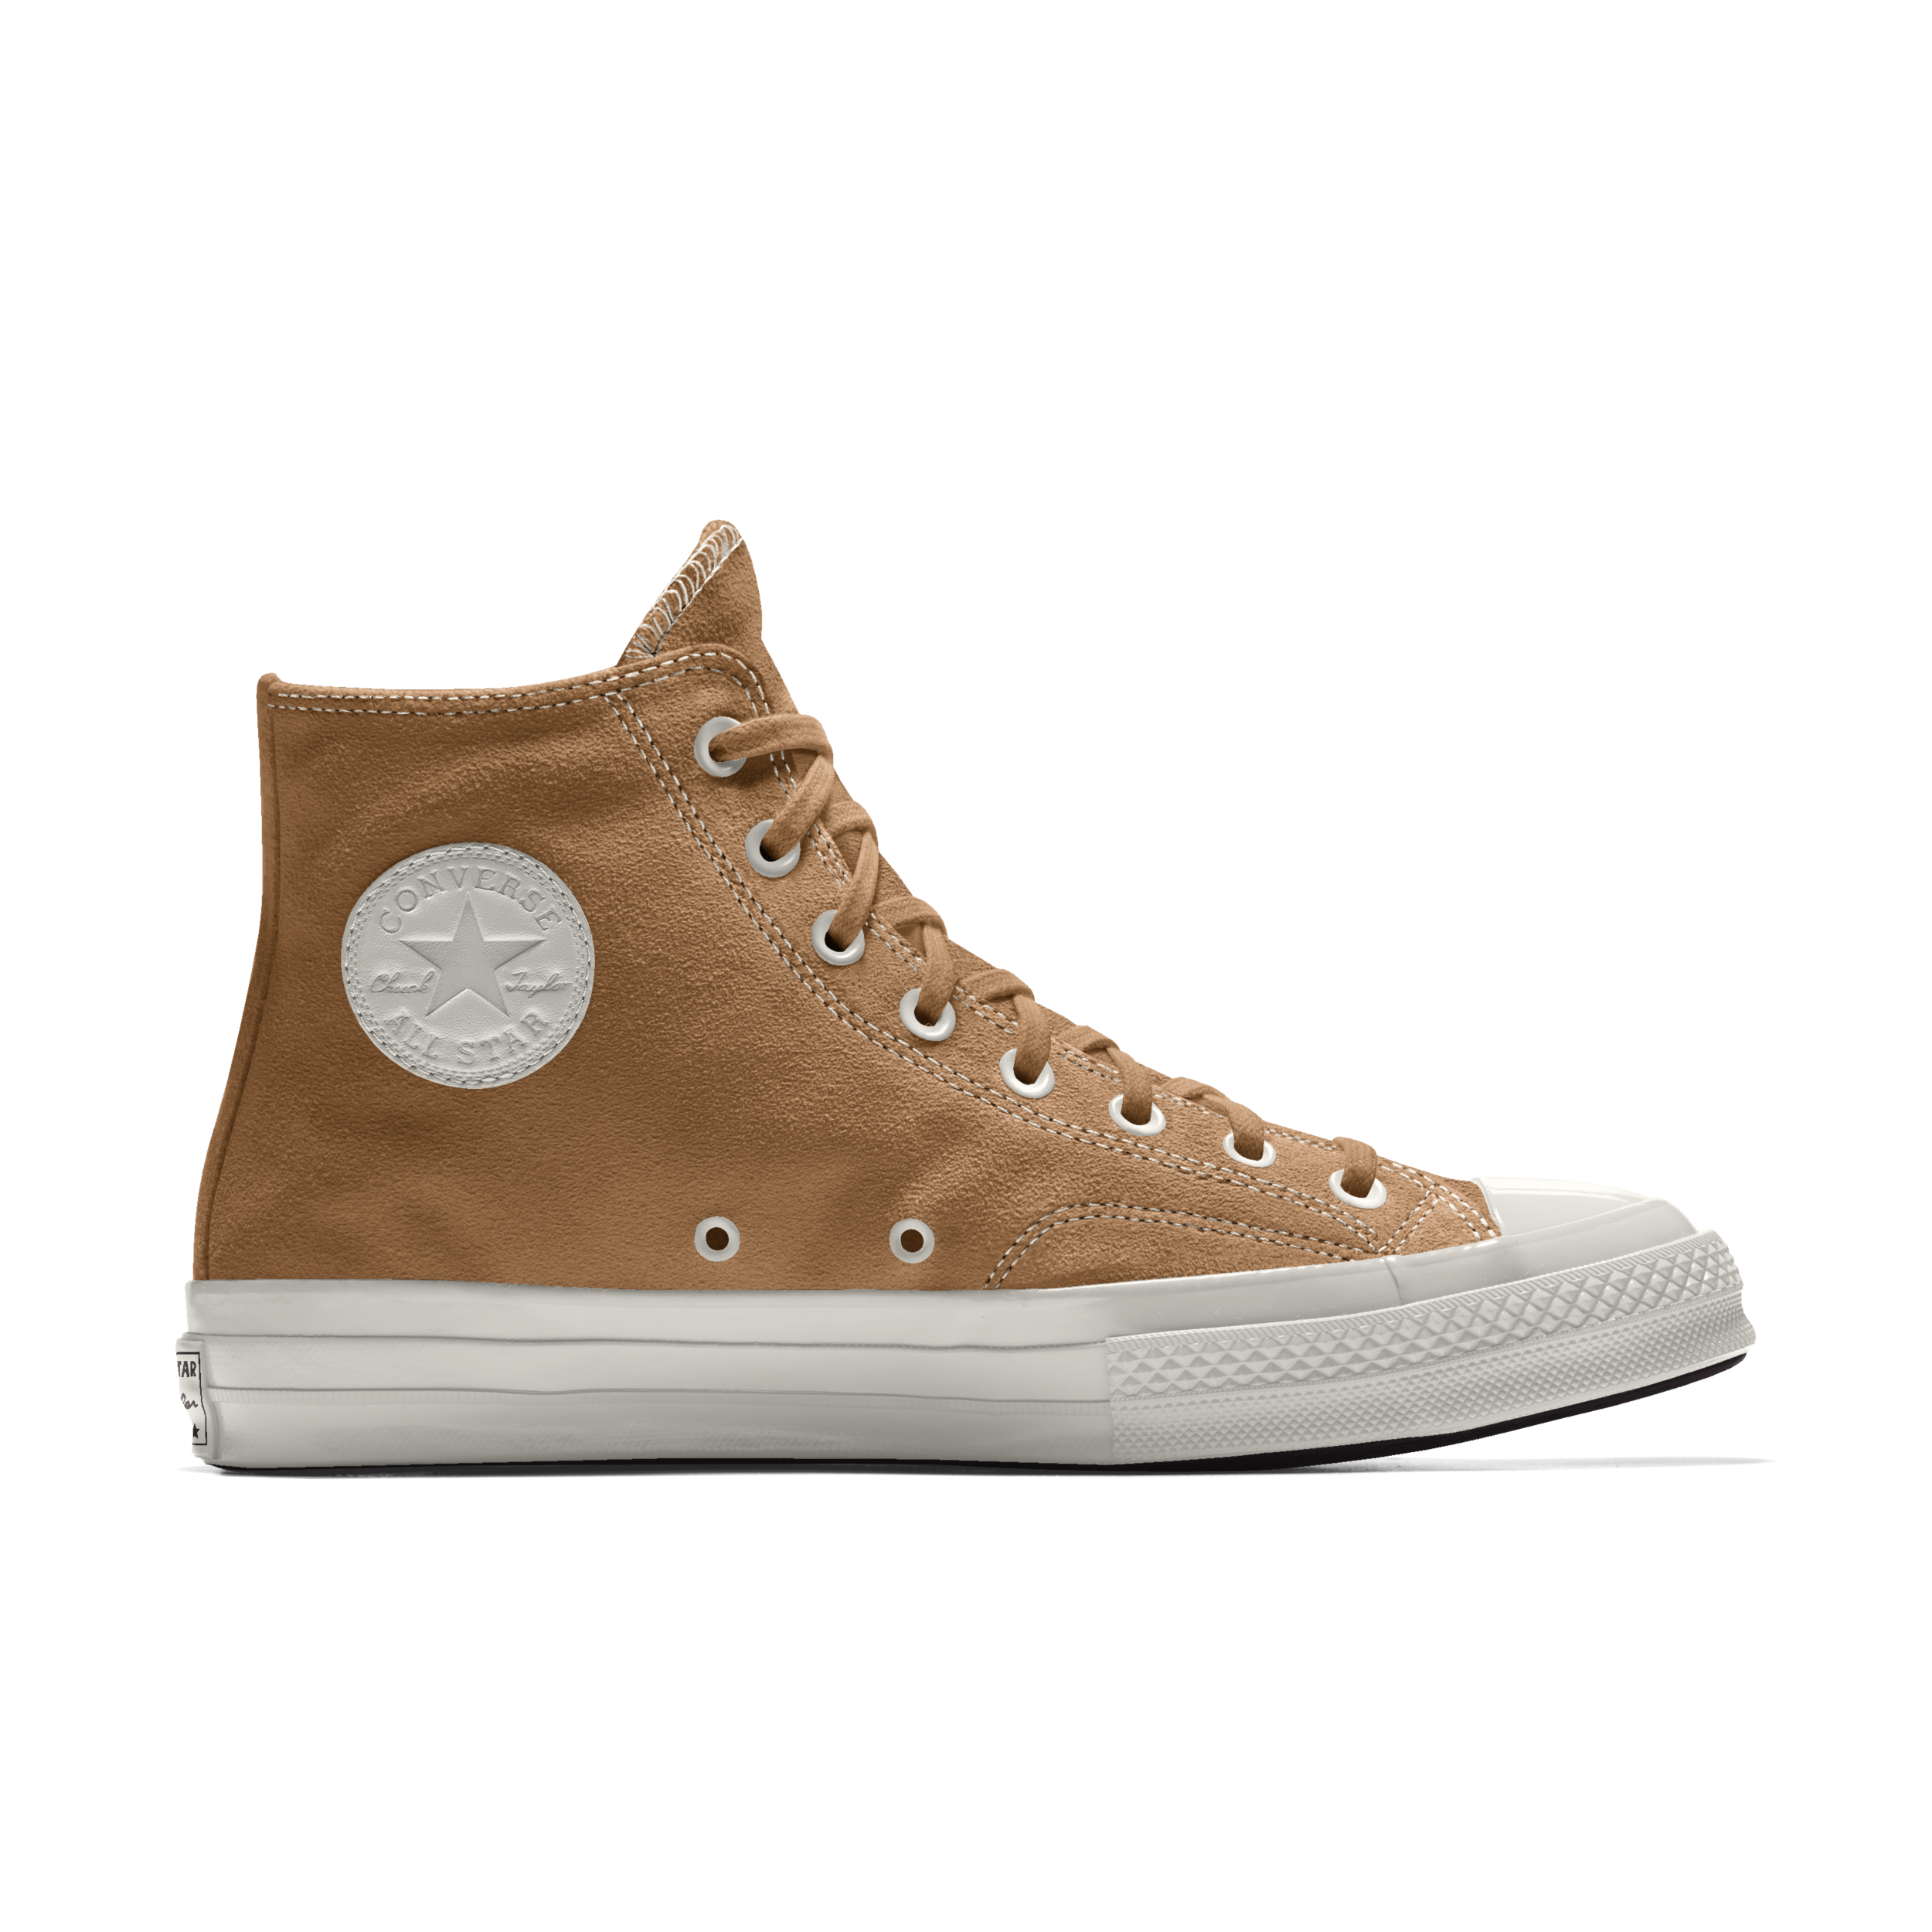 Details about Converse Custom Chuck 70 Suede High Top Size 11.5